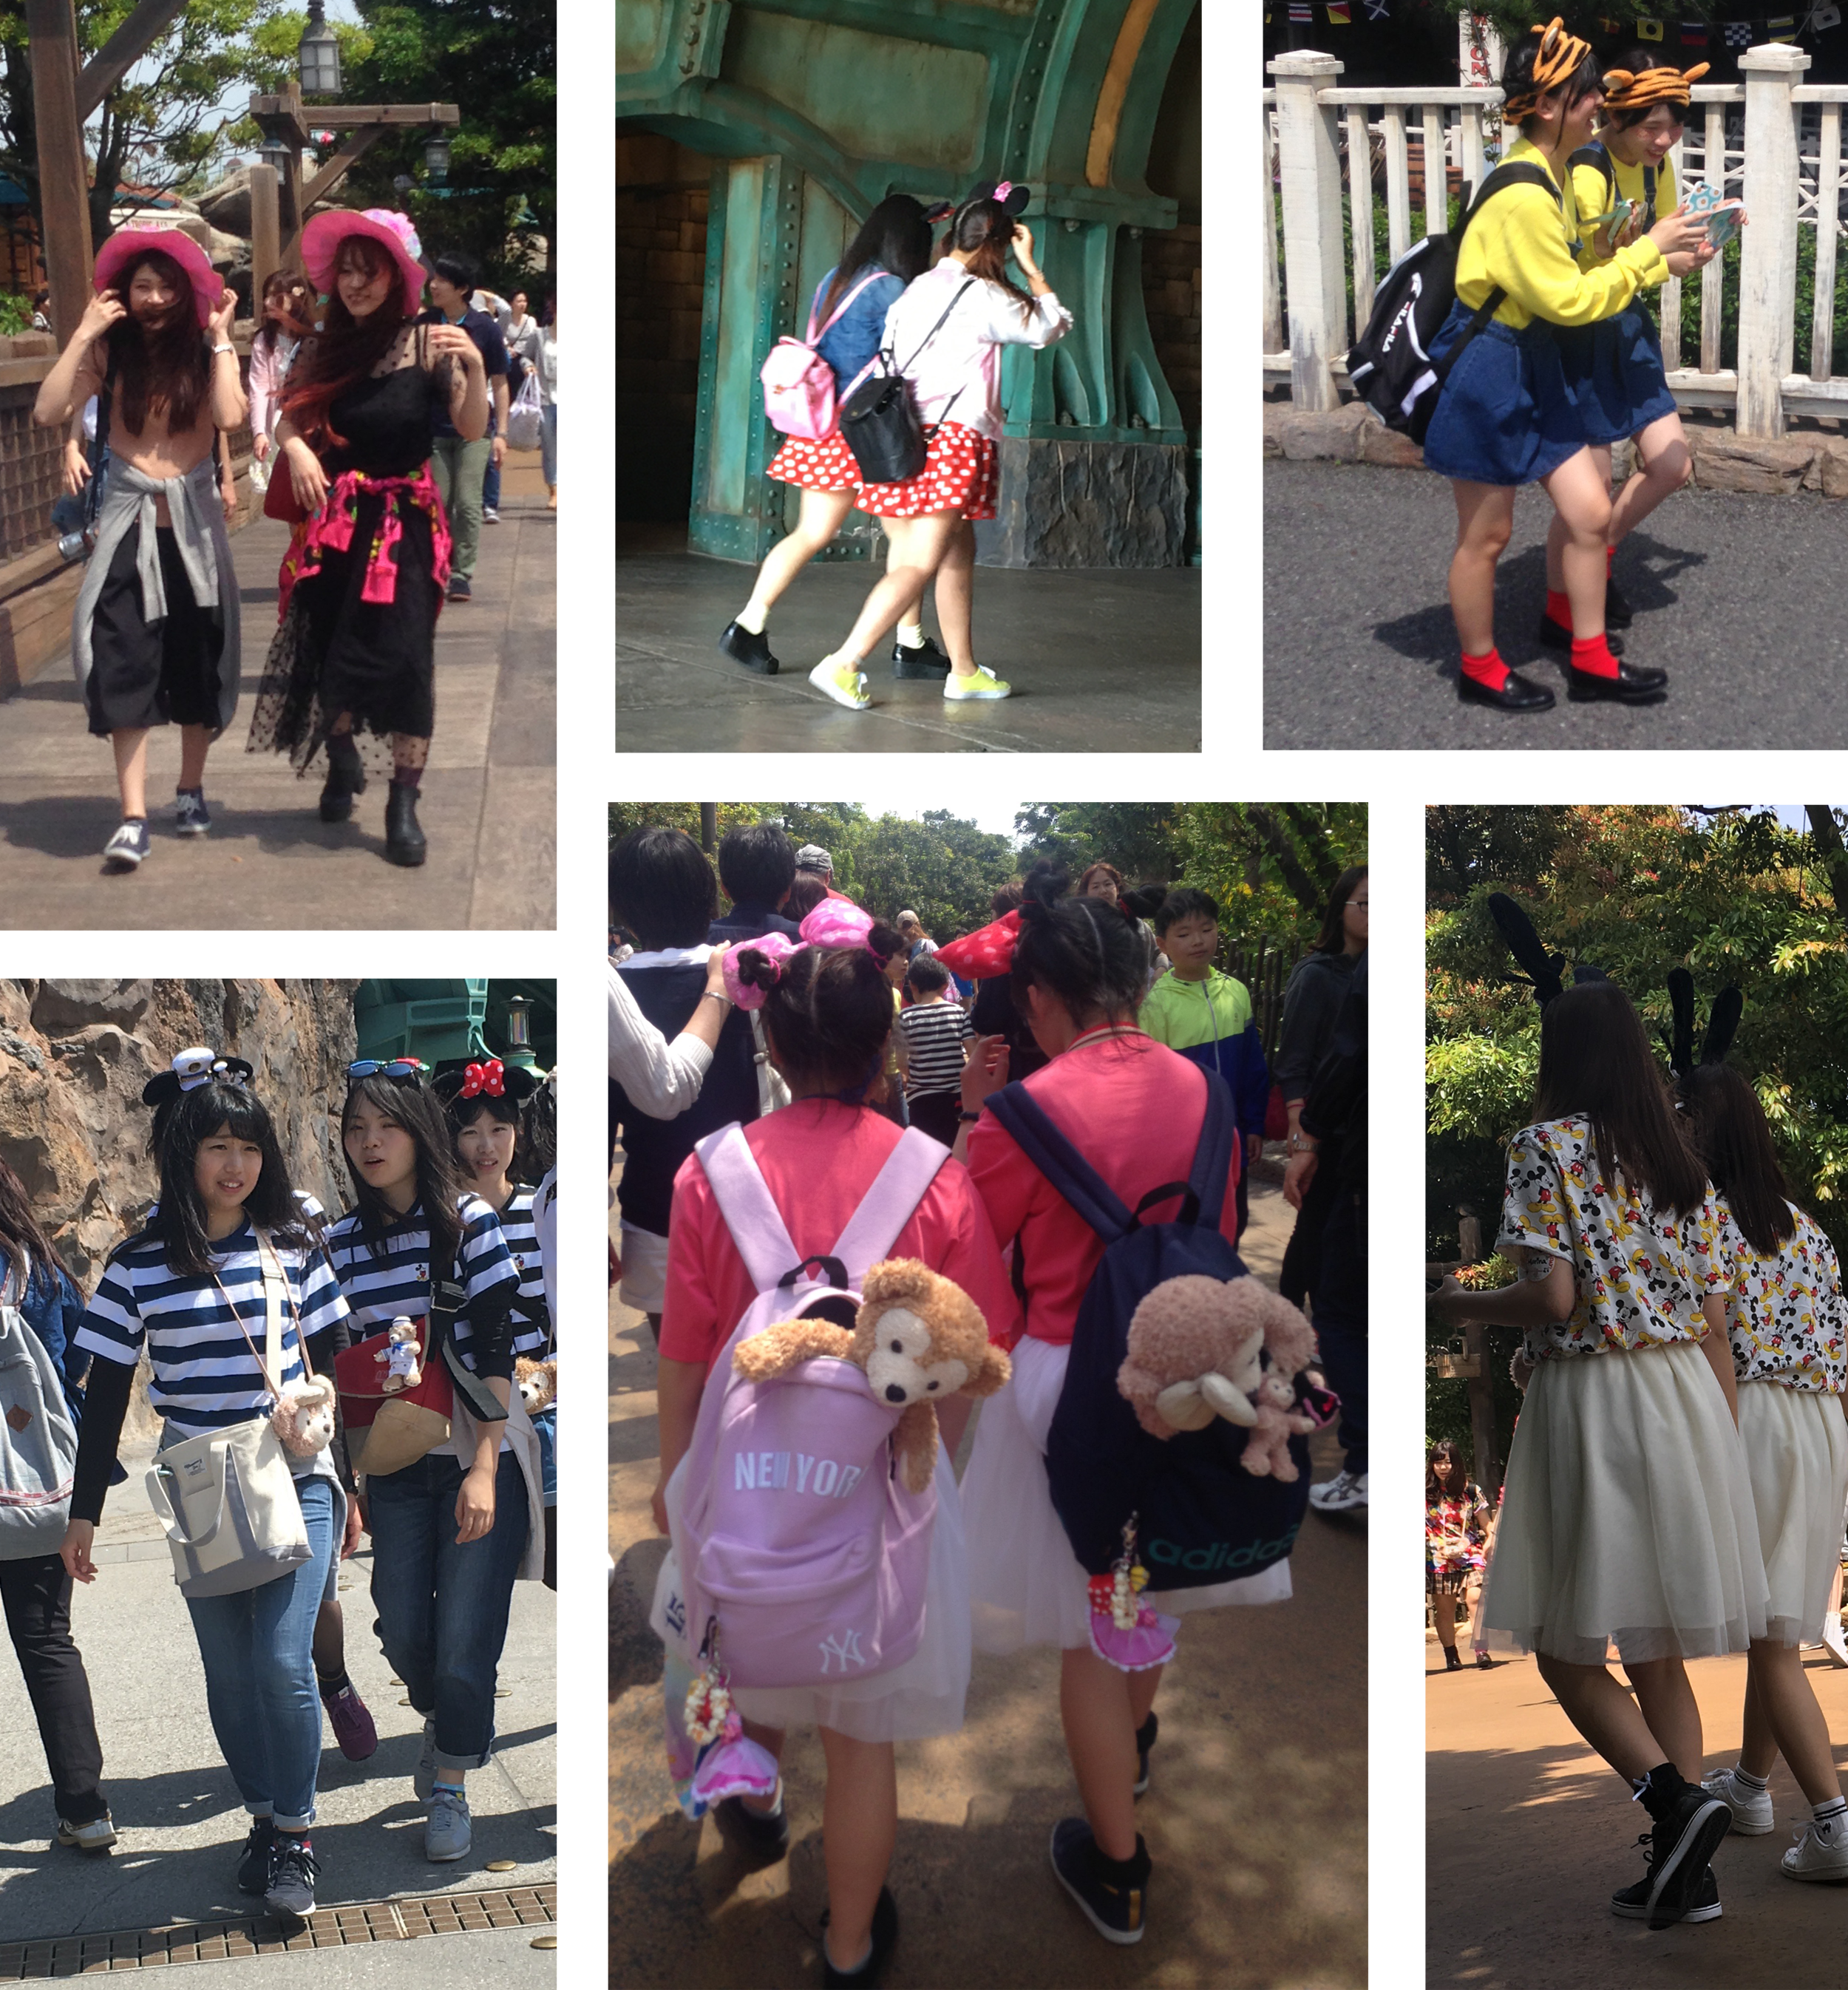 Many of the groups we saw with matching outfits.